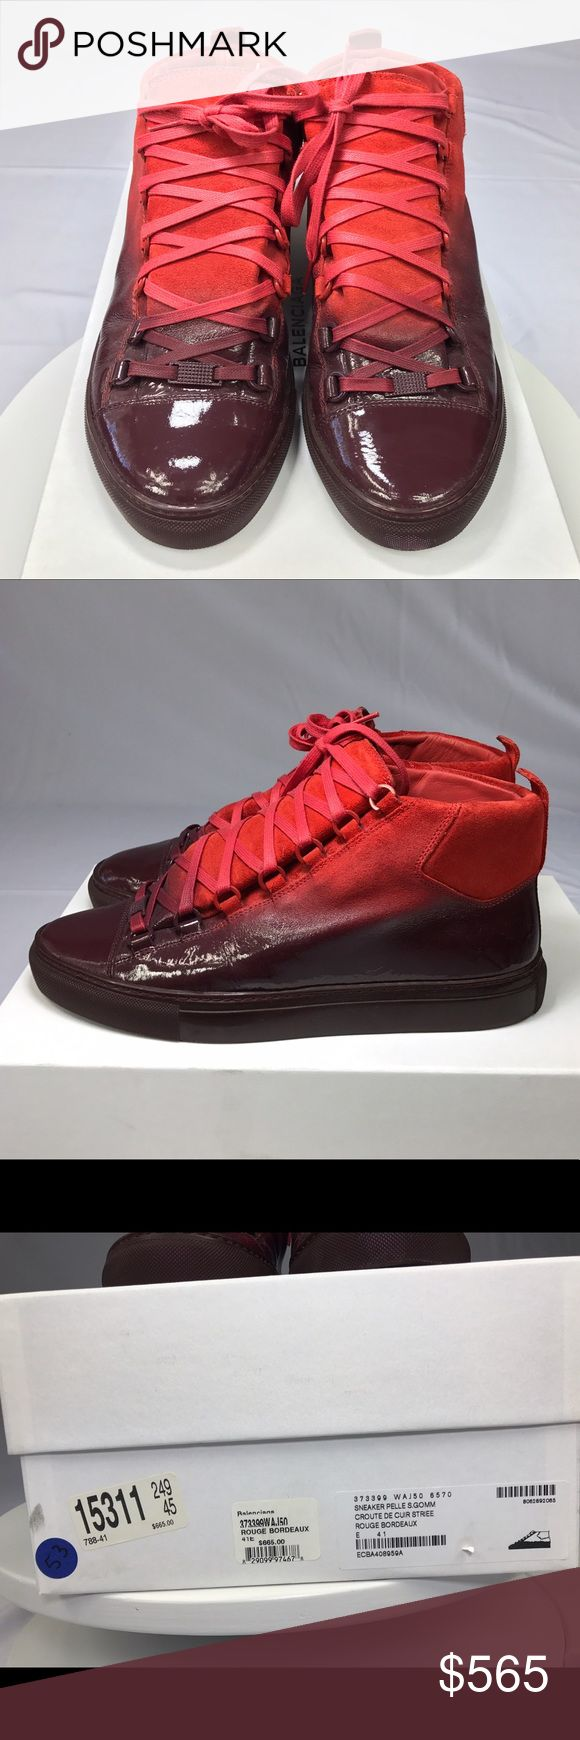 "Balenciaga Arena Sneakers - Dipped Collection-Red Red Dipped Collection Balenciaga Arena Sneakers. These shoes were worn a short time for a photo shoot and are in ""like new"" condition. They are a men's Size 41. My US shoe size is a 9. Balenciaga Shoes Sneakers"